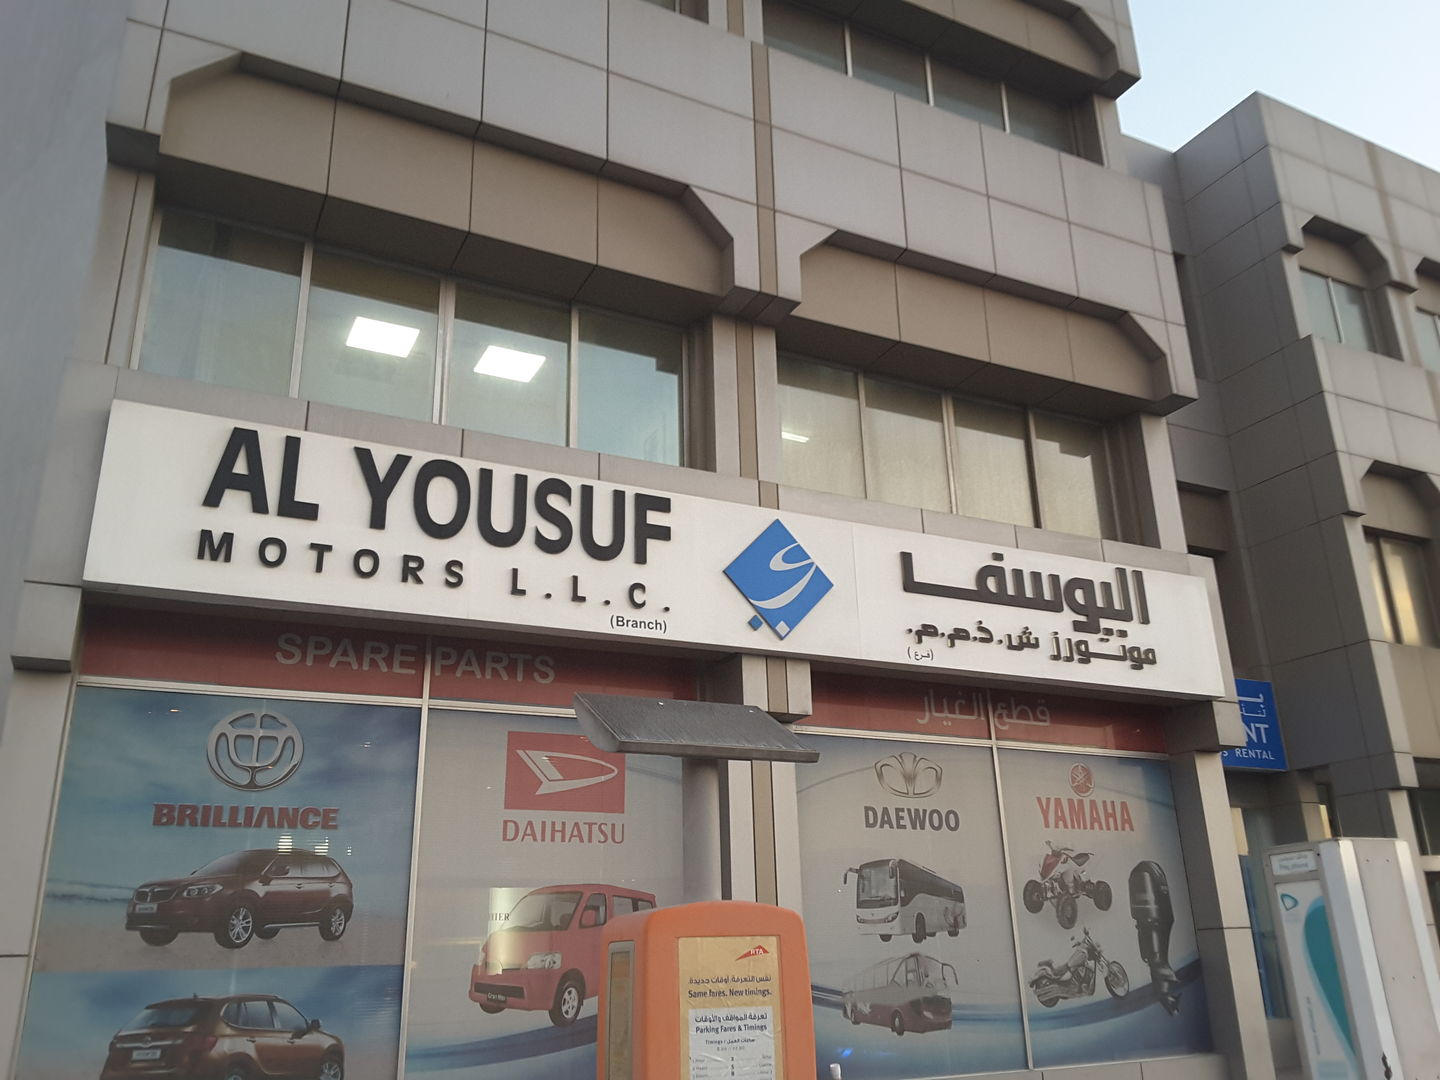 HiDubai-business-al-yousuf-motors-transport-vehicle-services-auto-spare-parts-accessories-umm-ramool-dubai-2